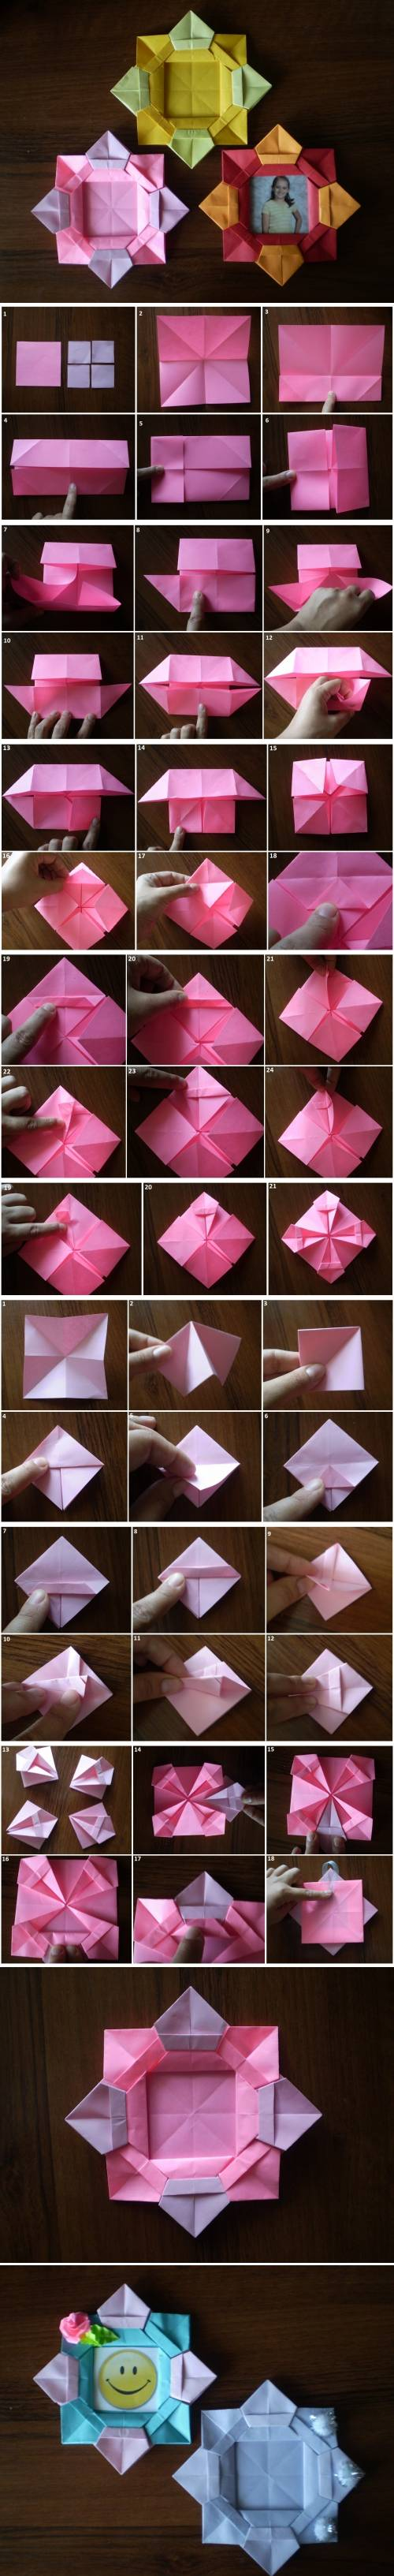 How to make Origami Flower Picture Frame step by step DIY tutorial instructions